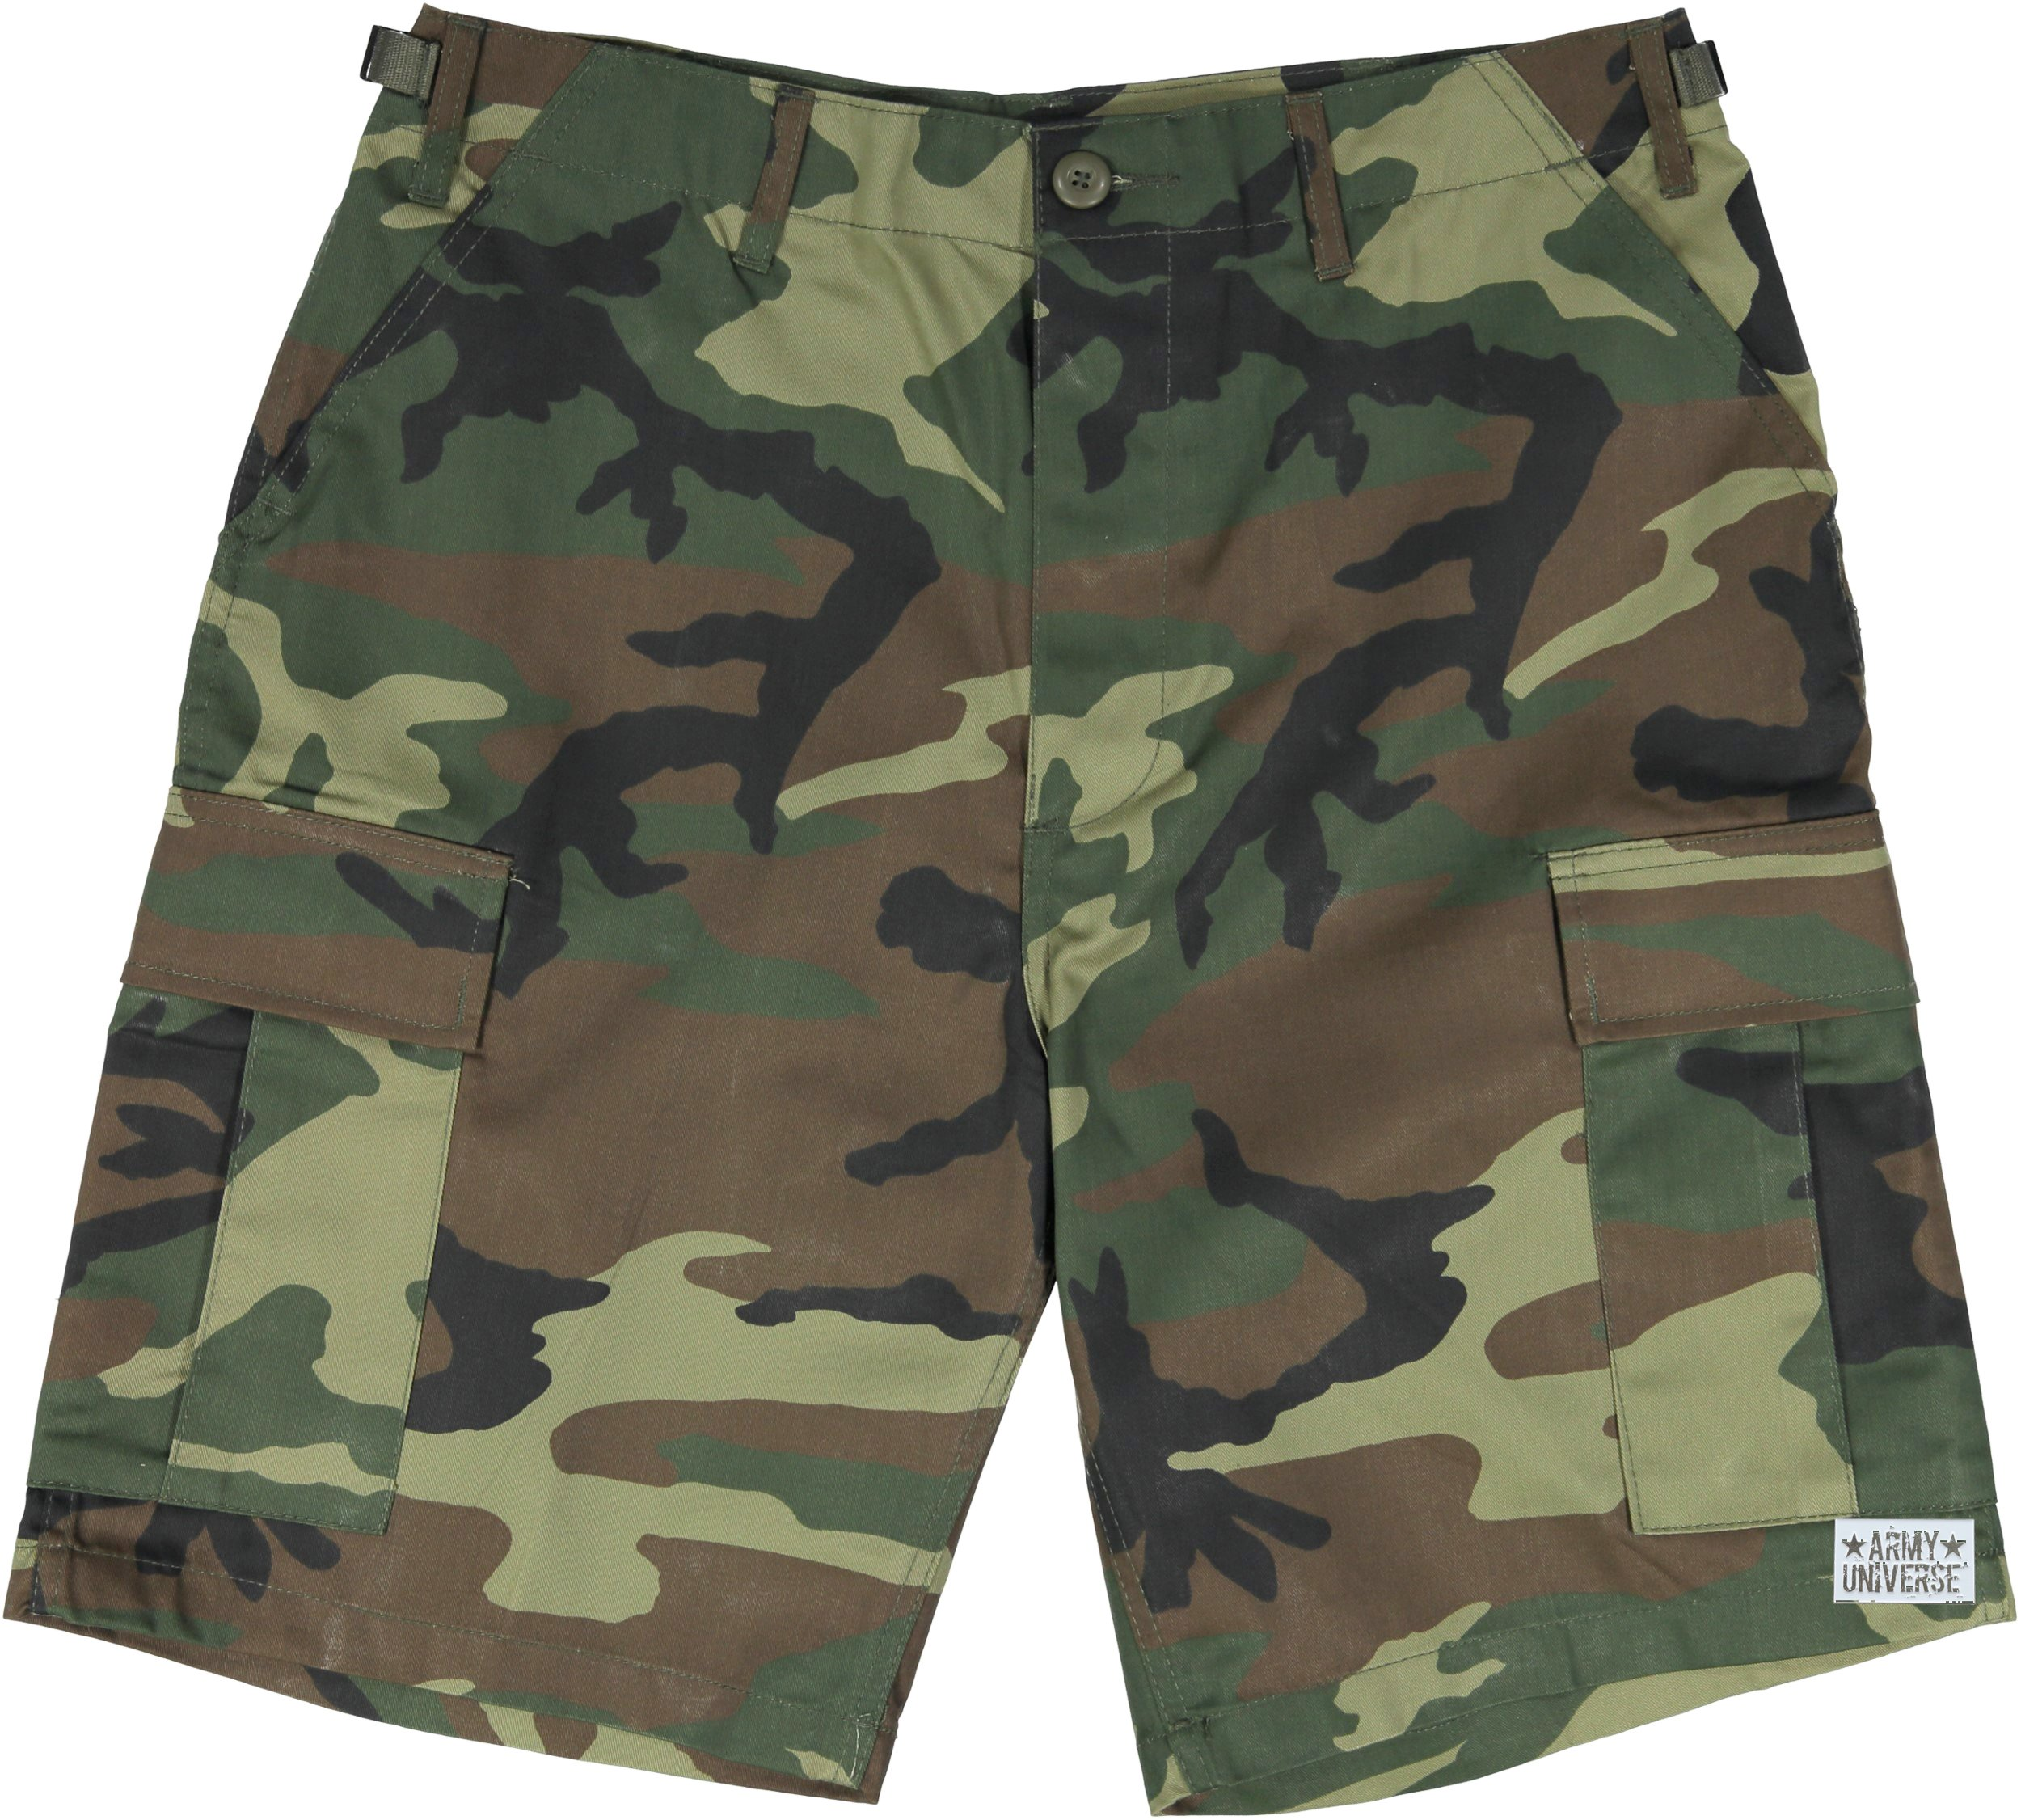 Army Universe Woodland Camouflage Military BDU Cargo Shorts with Pin Size XXXX-Large (Waist 51-55'')